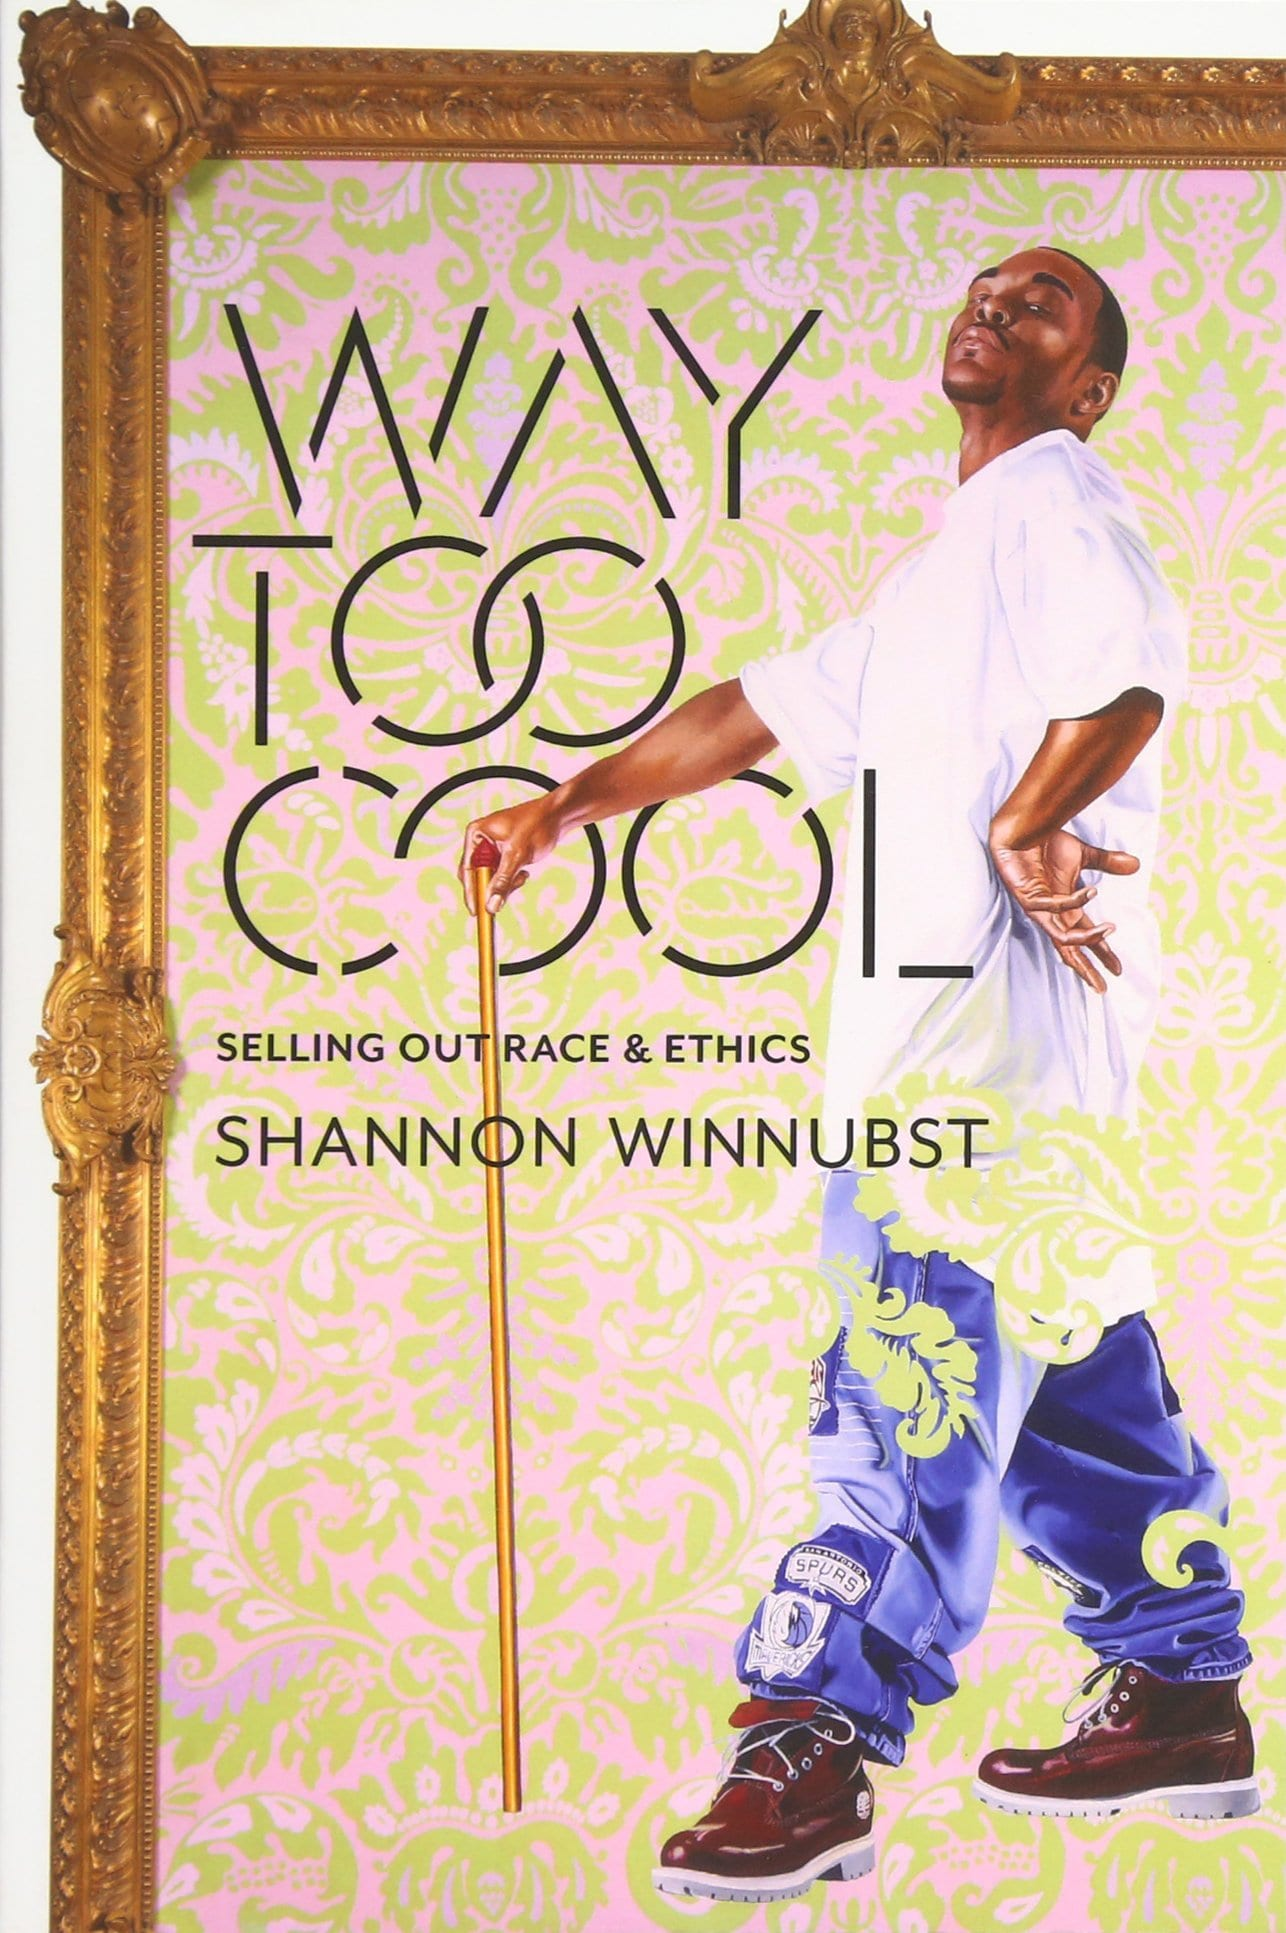 Way Too Cool: Selling Out Race and Ethics by Dr. Shannon Winnubst